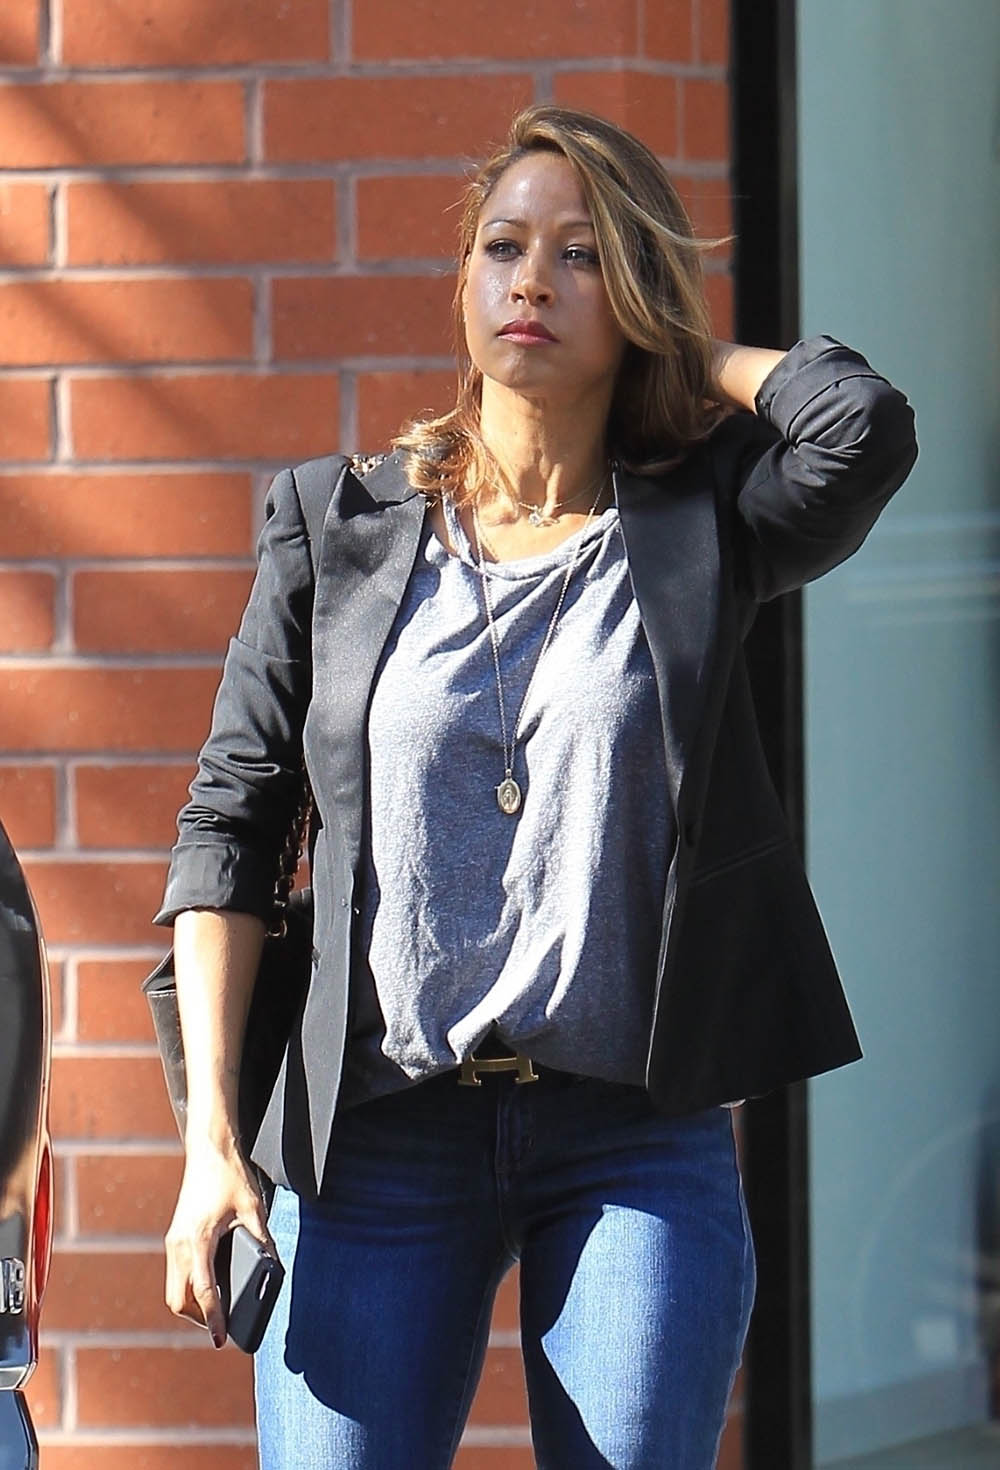 Clueless star Stacey dash shopping in Beverly Hills